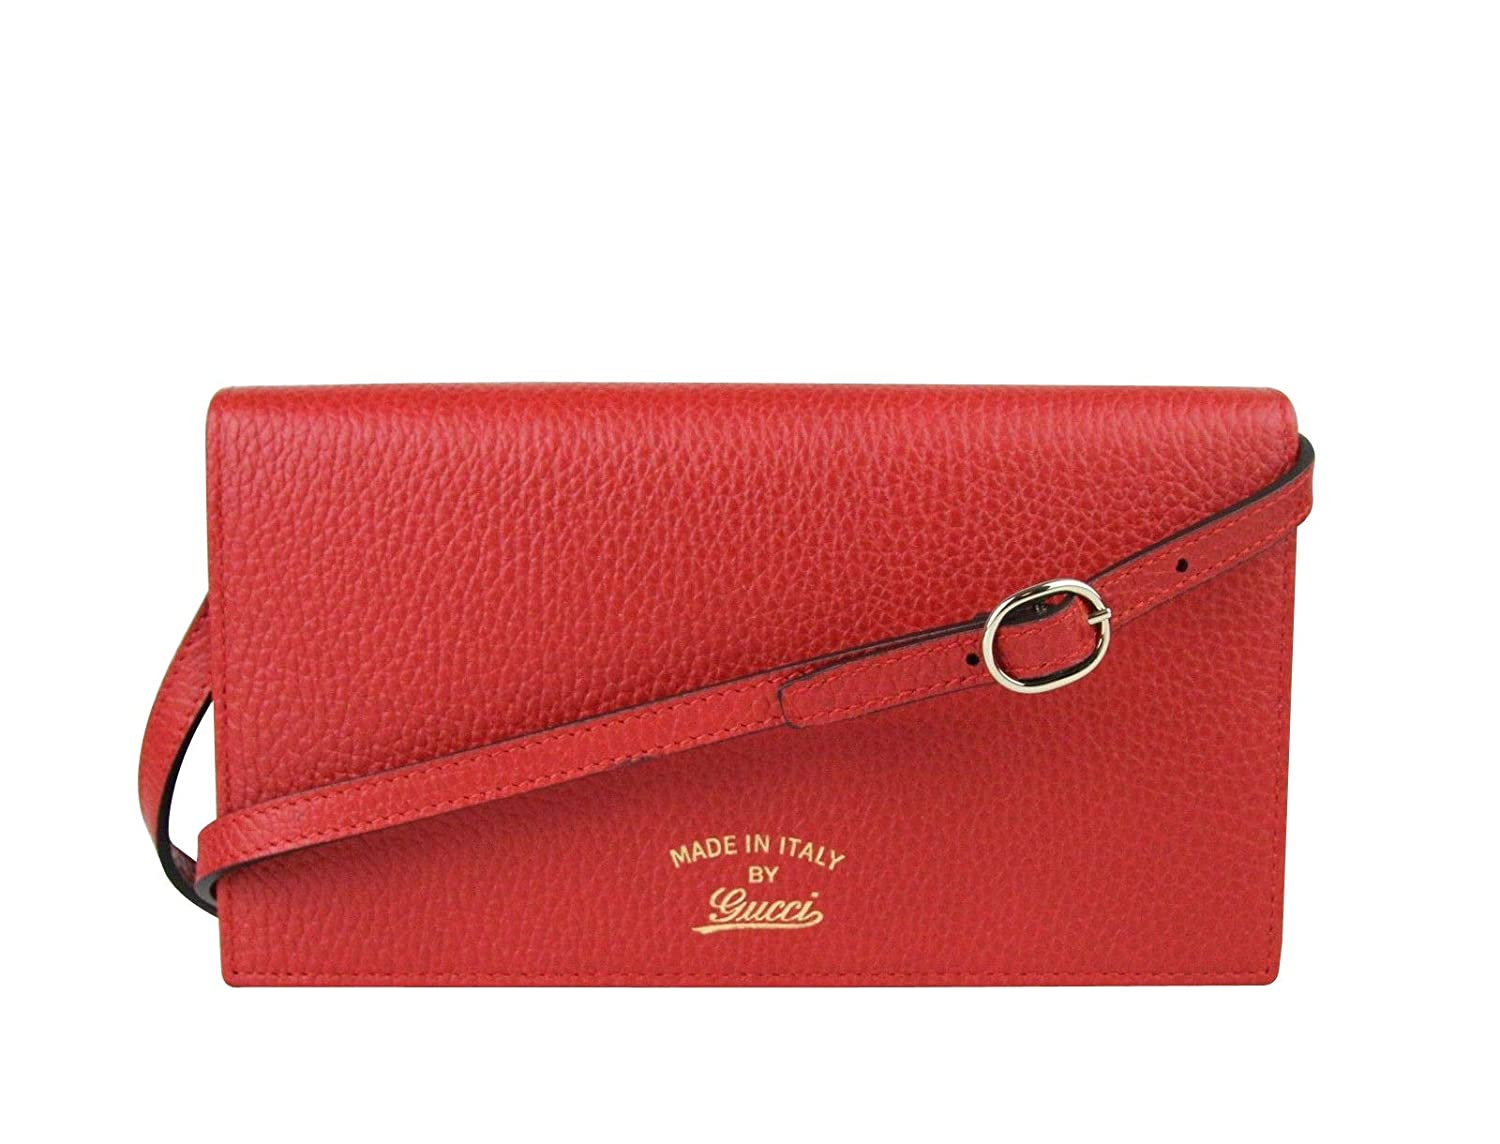 a92dd288a1f Amazon.com  Gucci Women s Swing Red Leather Crossbody Clutch Wallet 368231  6523  Shoes